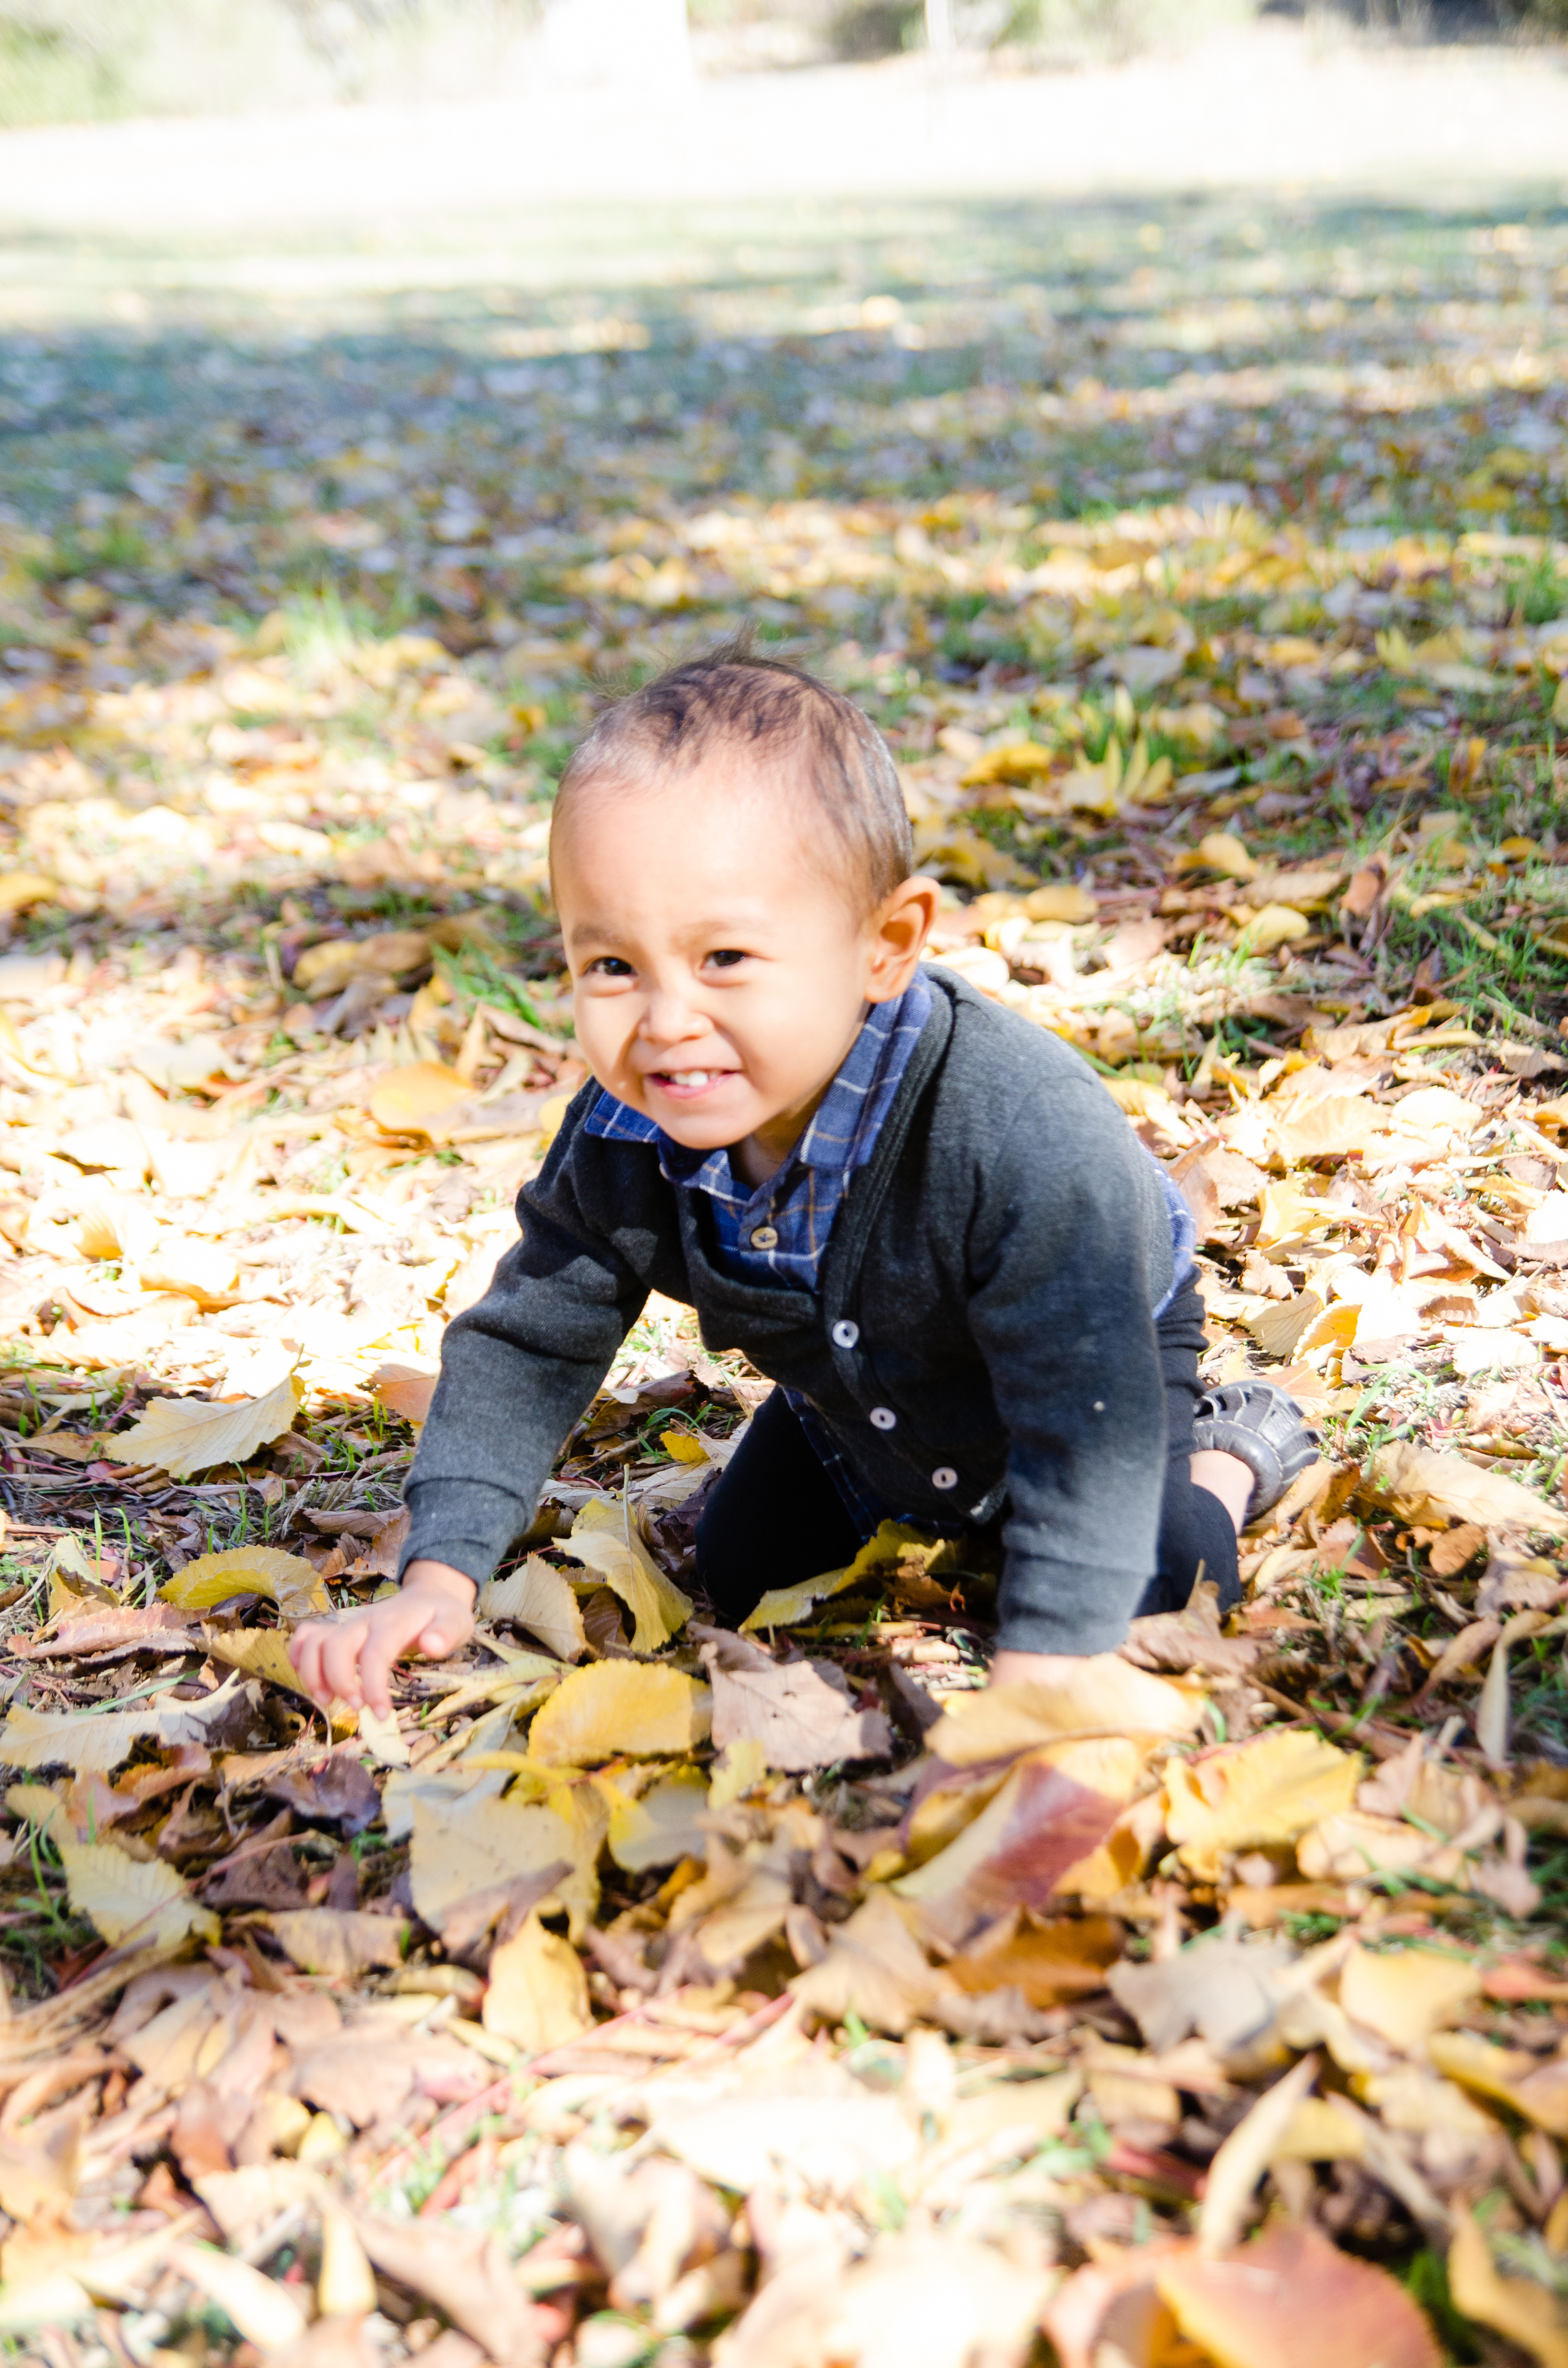 First time crawling through leaves during #optout